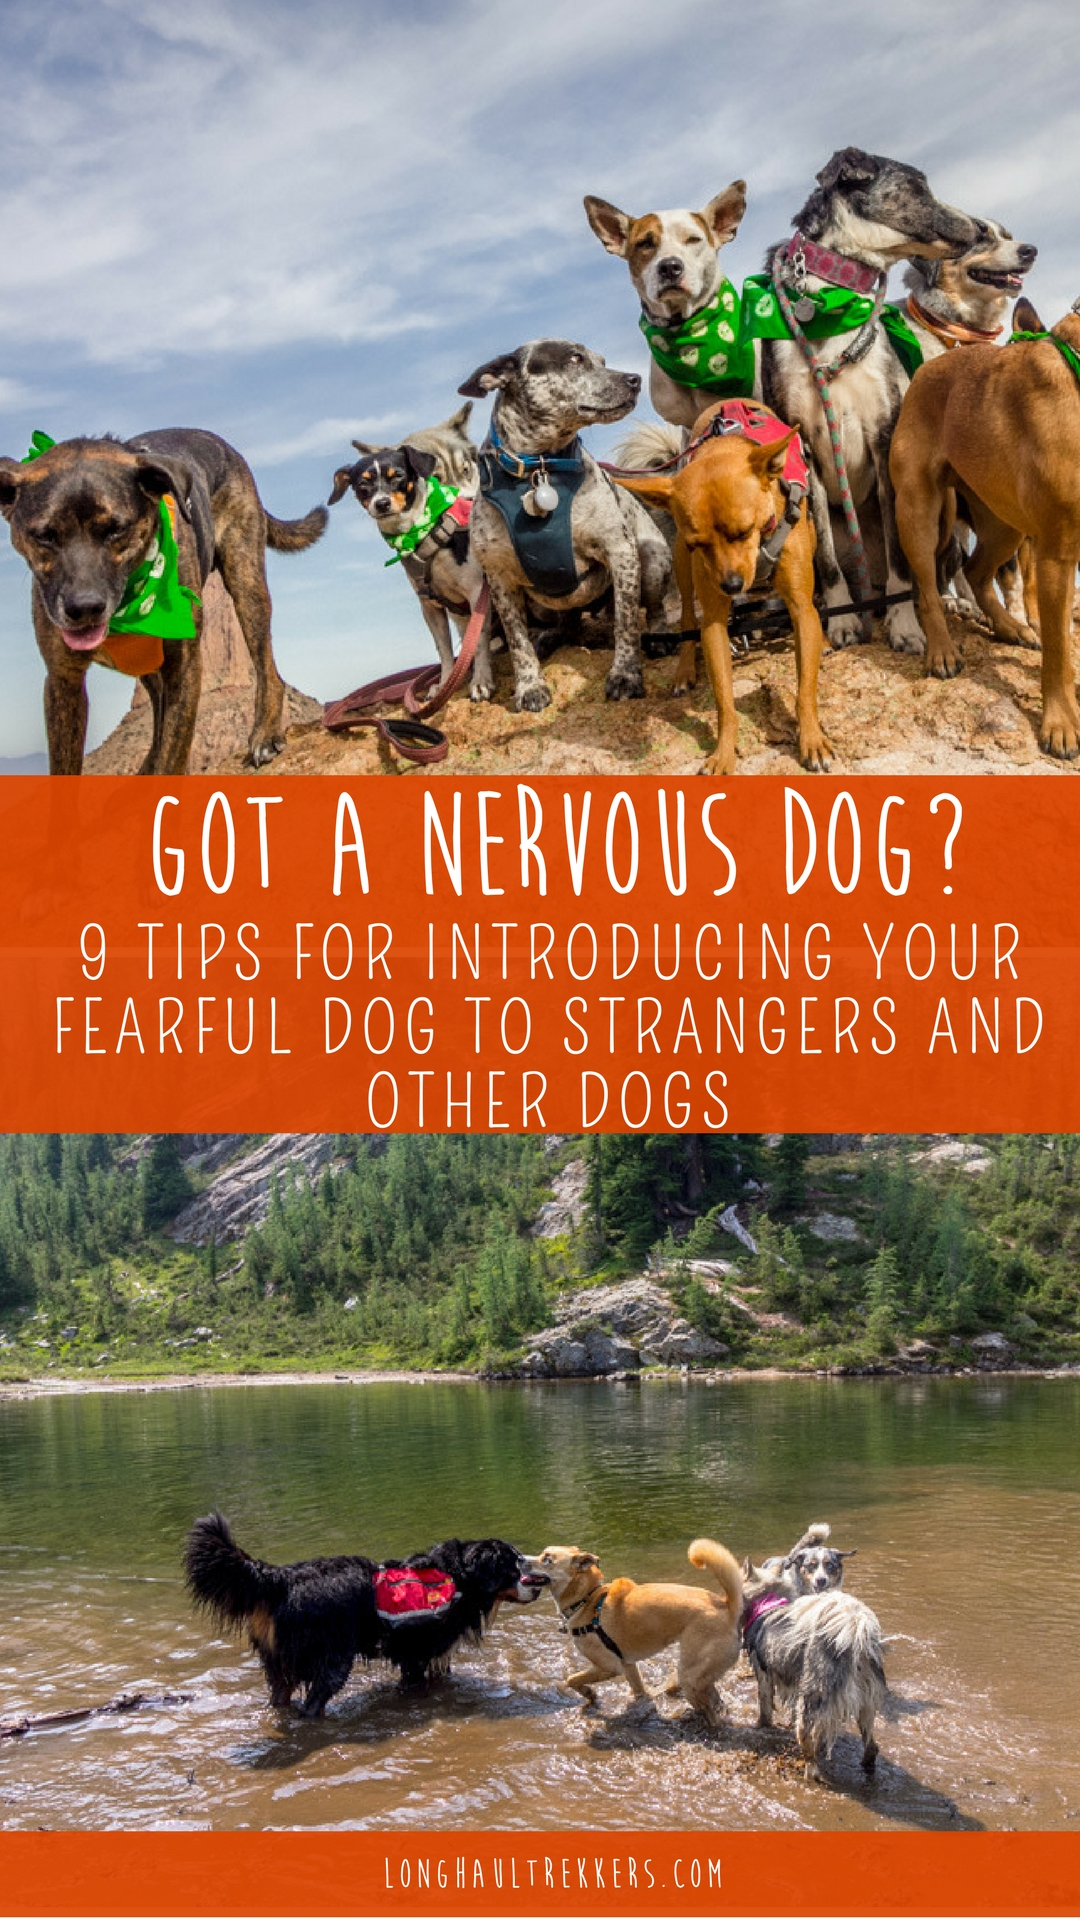 Getting out with a nervous dog can be stressful. Follow these 9 tips for helping reassure your nervous dog around new dogs and strangers.